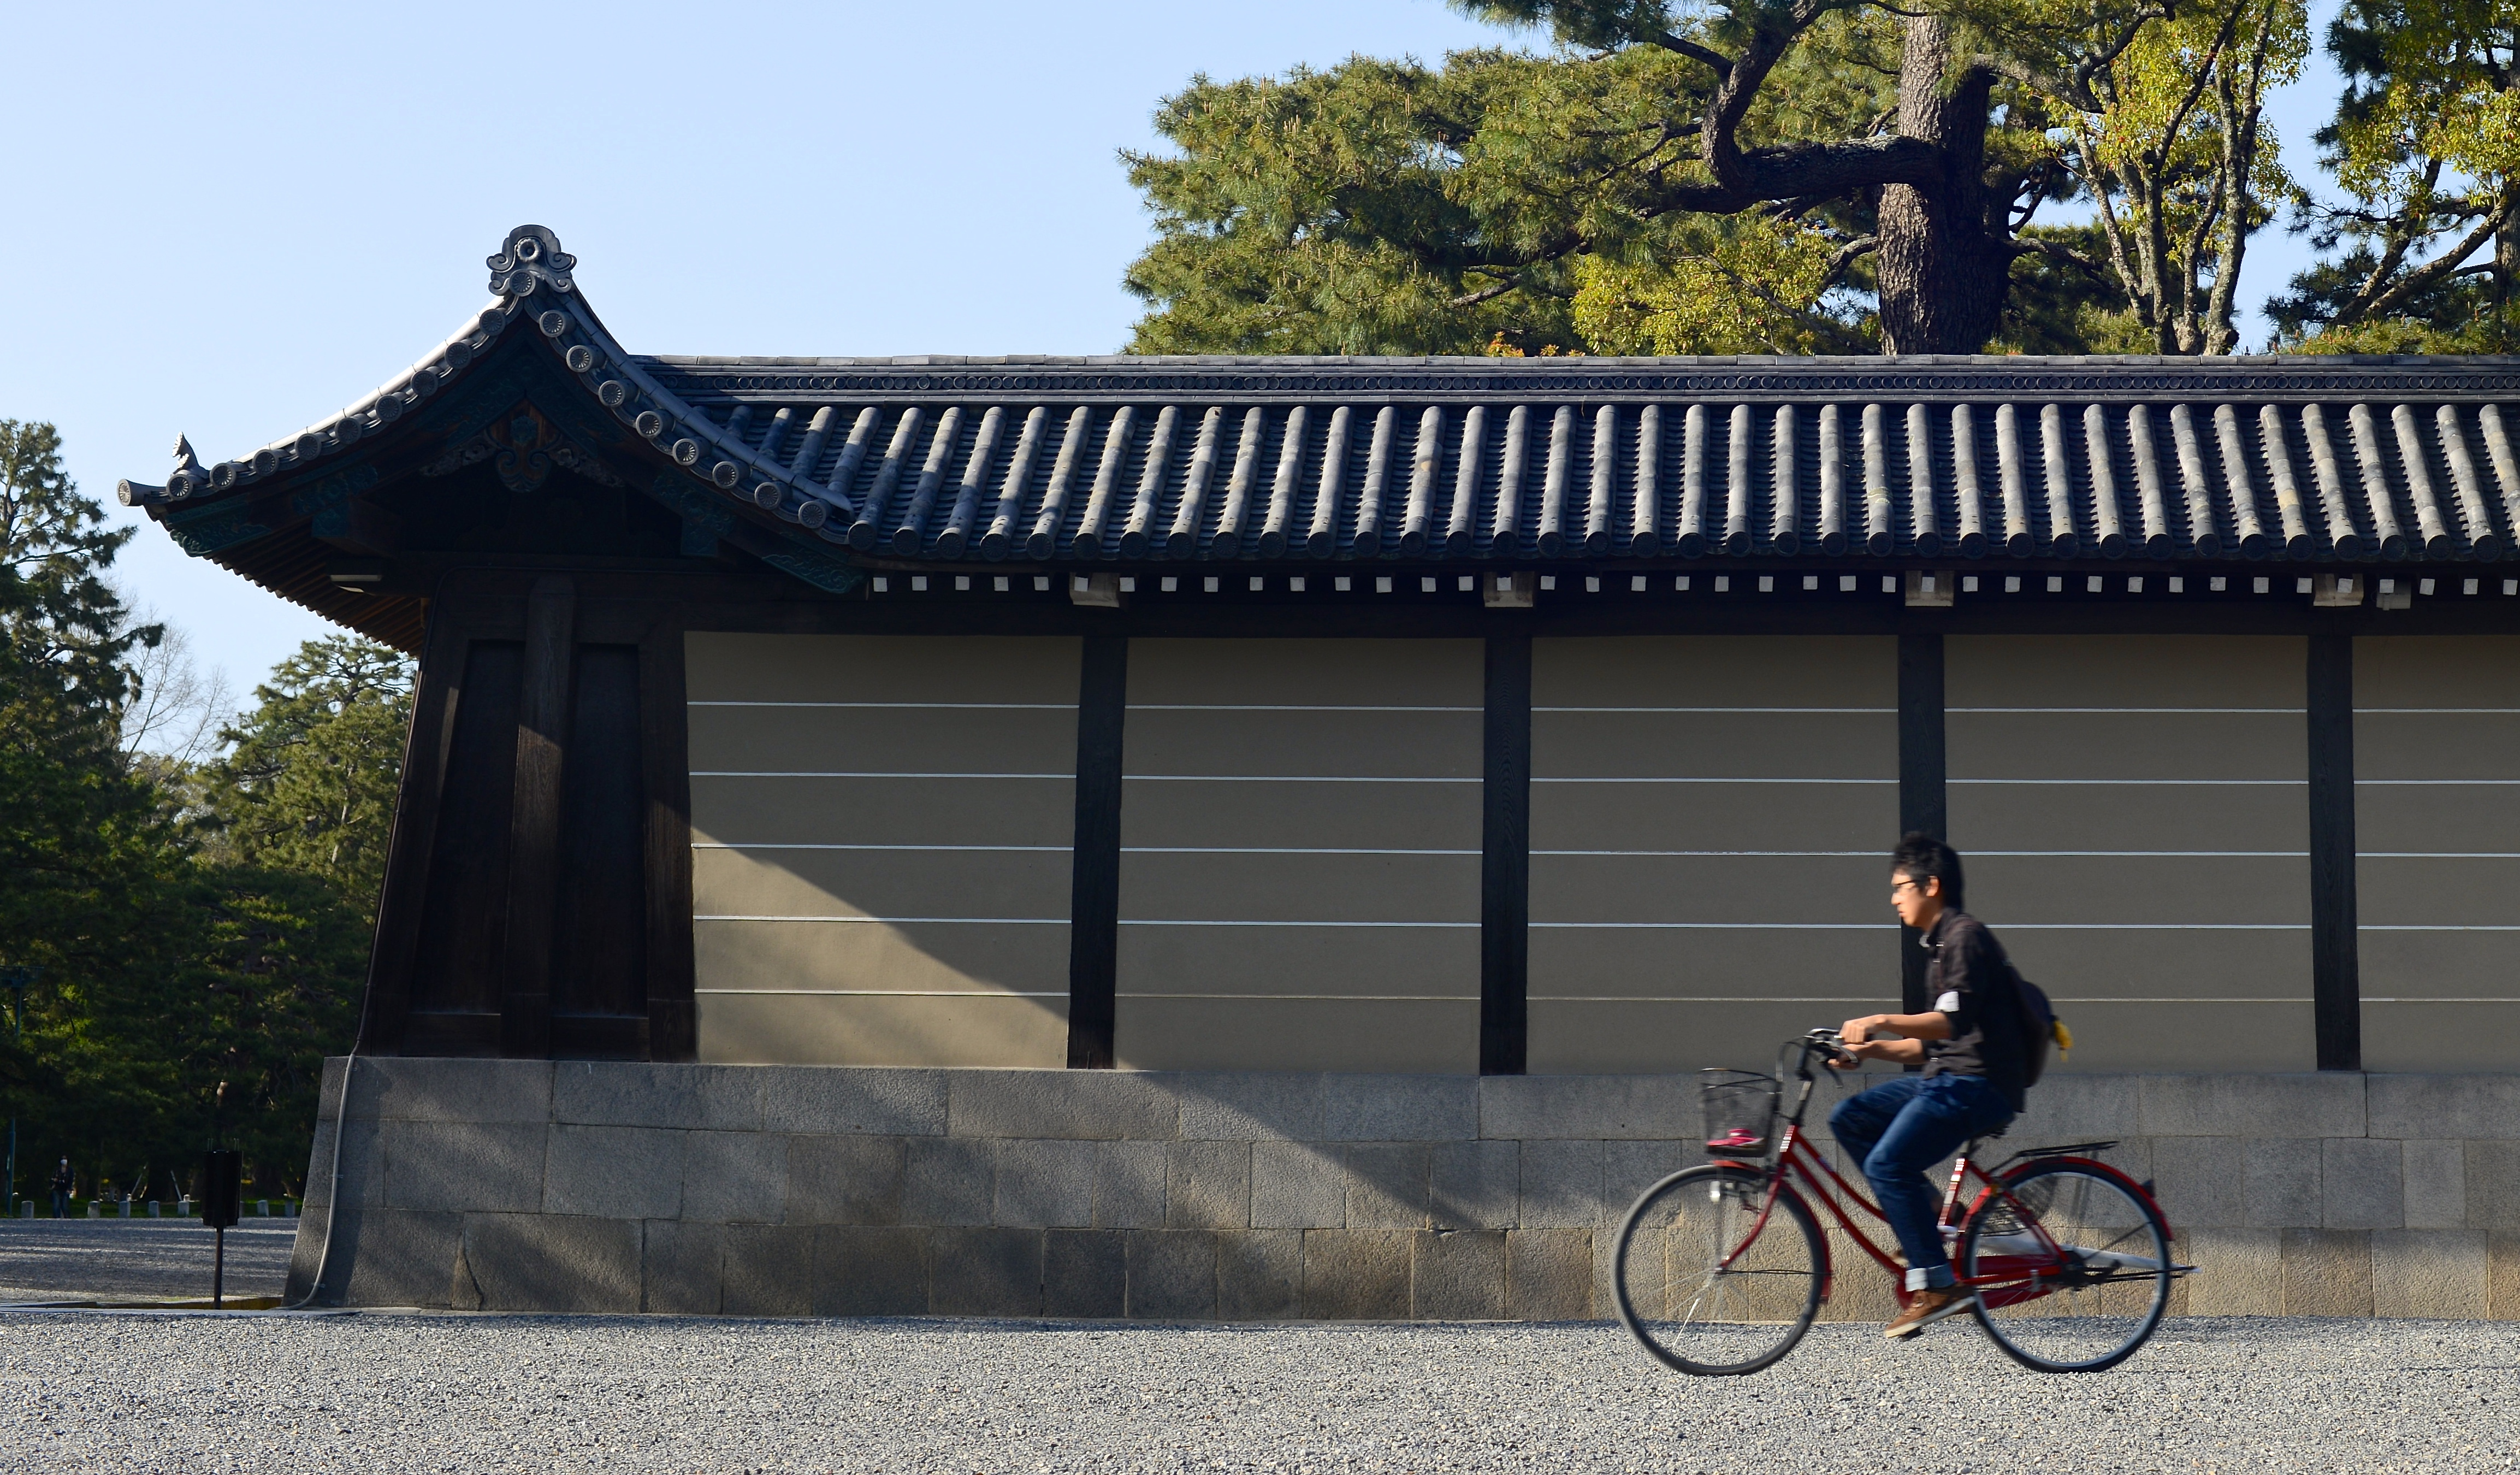 man on bicycle at kyoto imperial palace